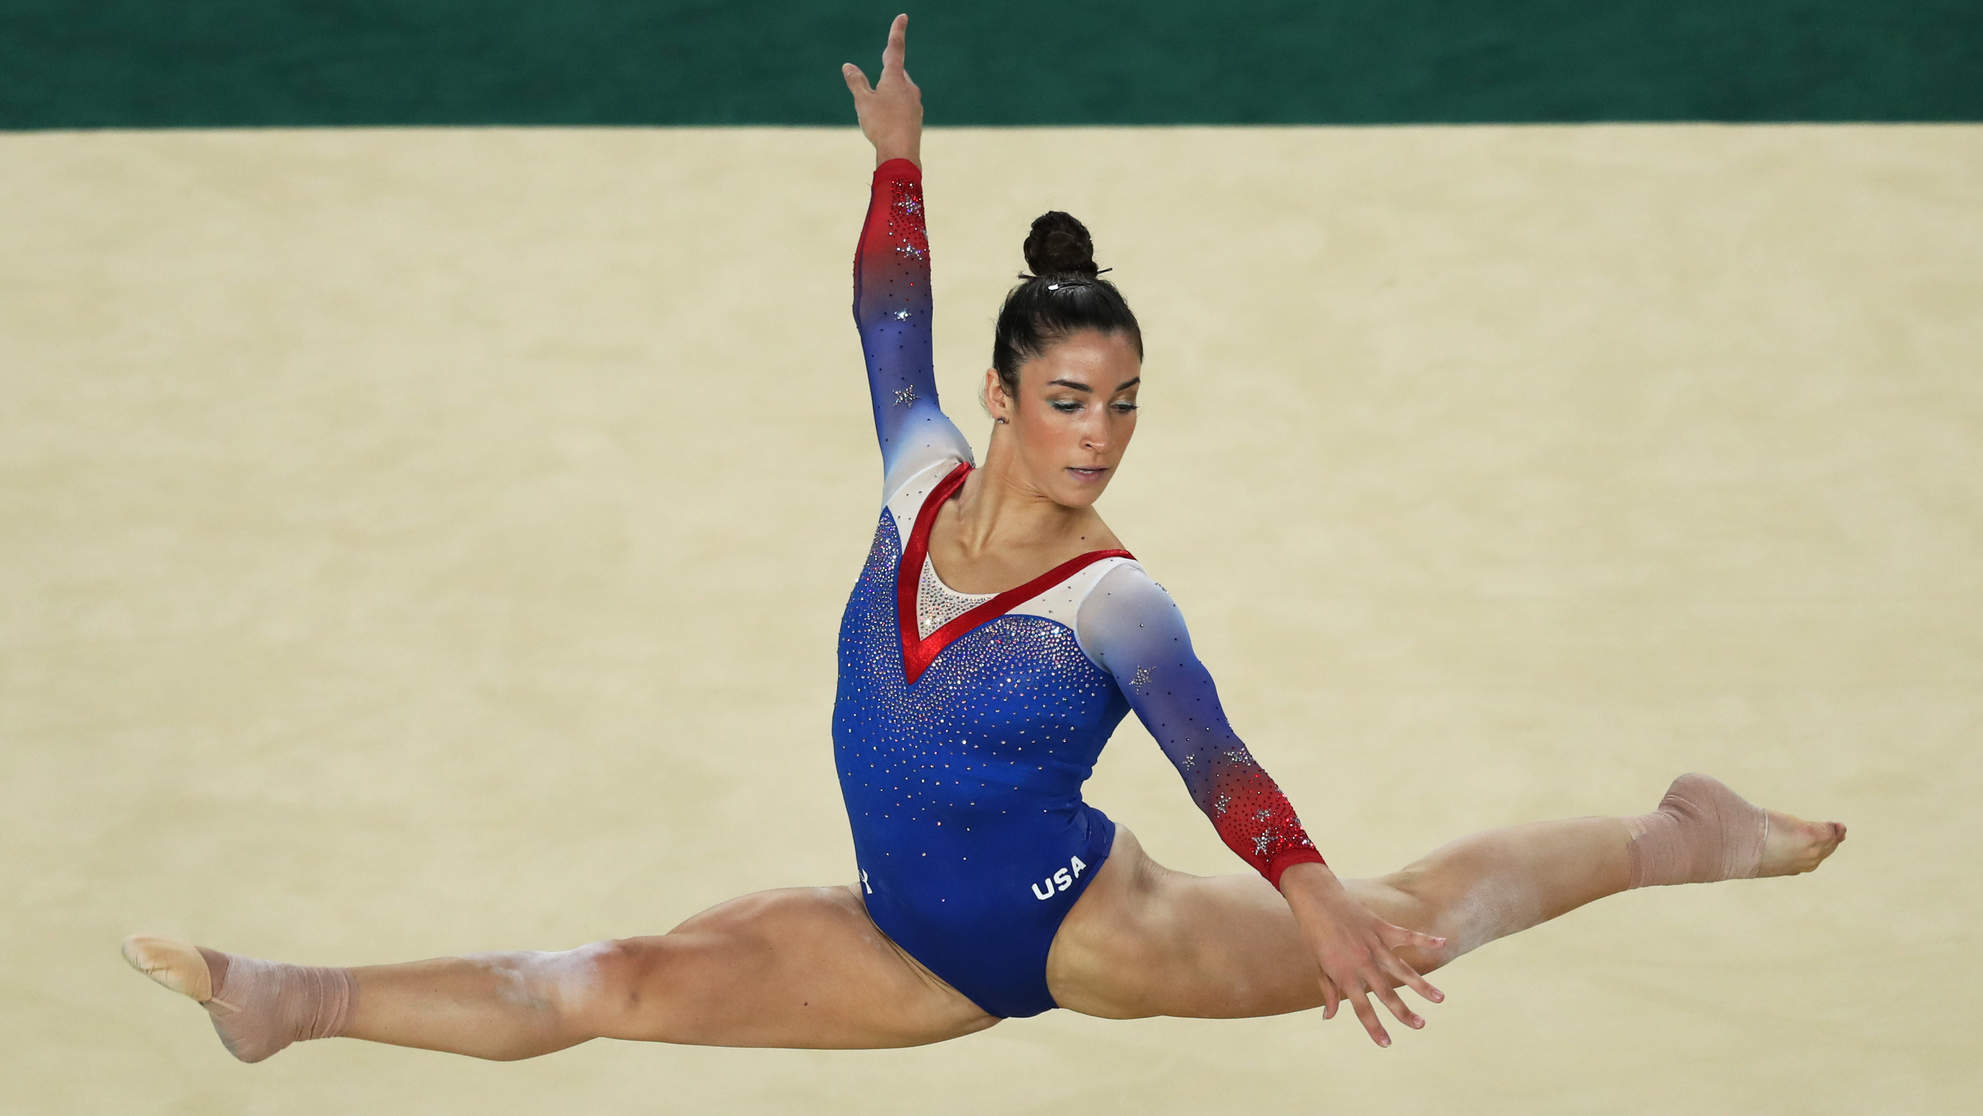 Aly Raisman Says Abuse by Team Doctor Began When She Was 15: 'It's Horrific What I Went Through'